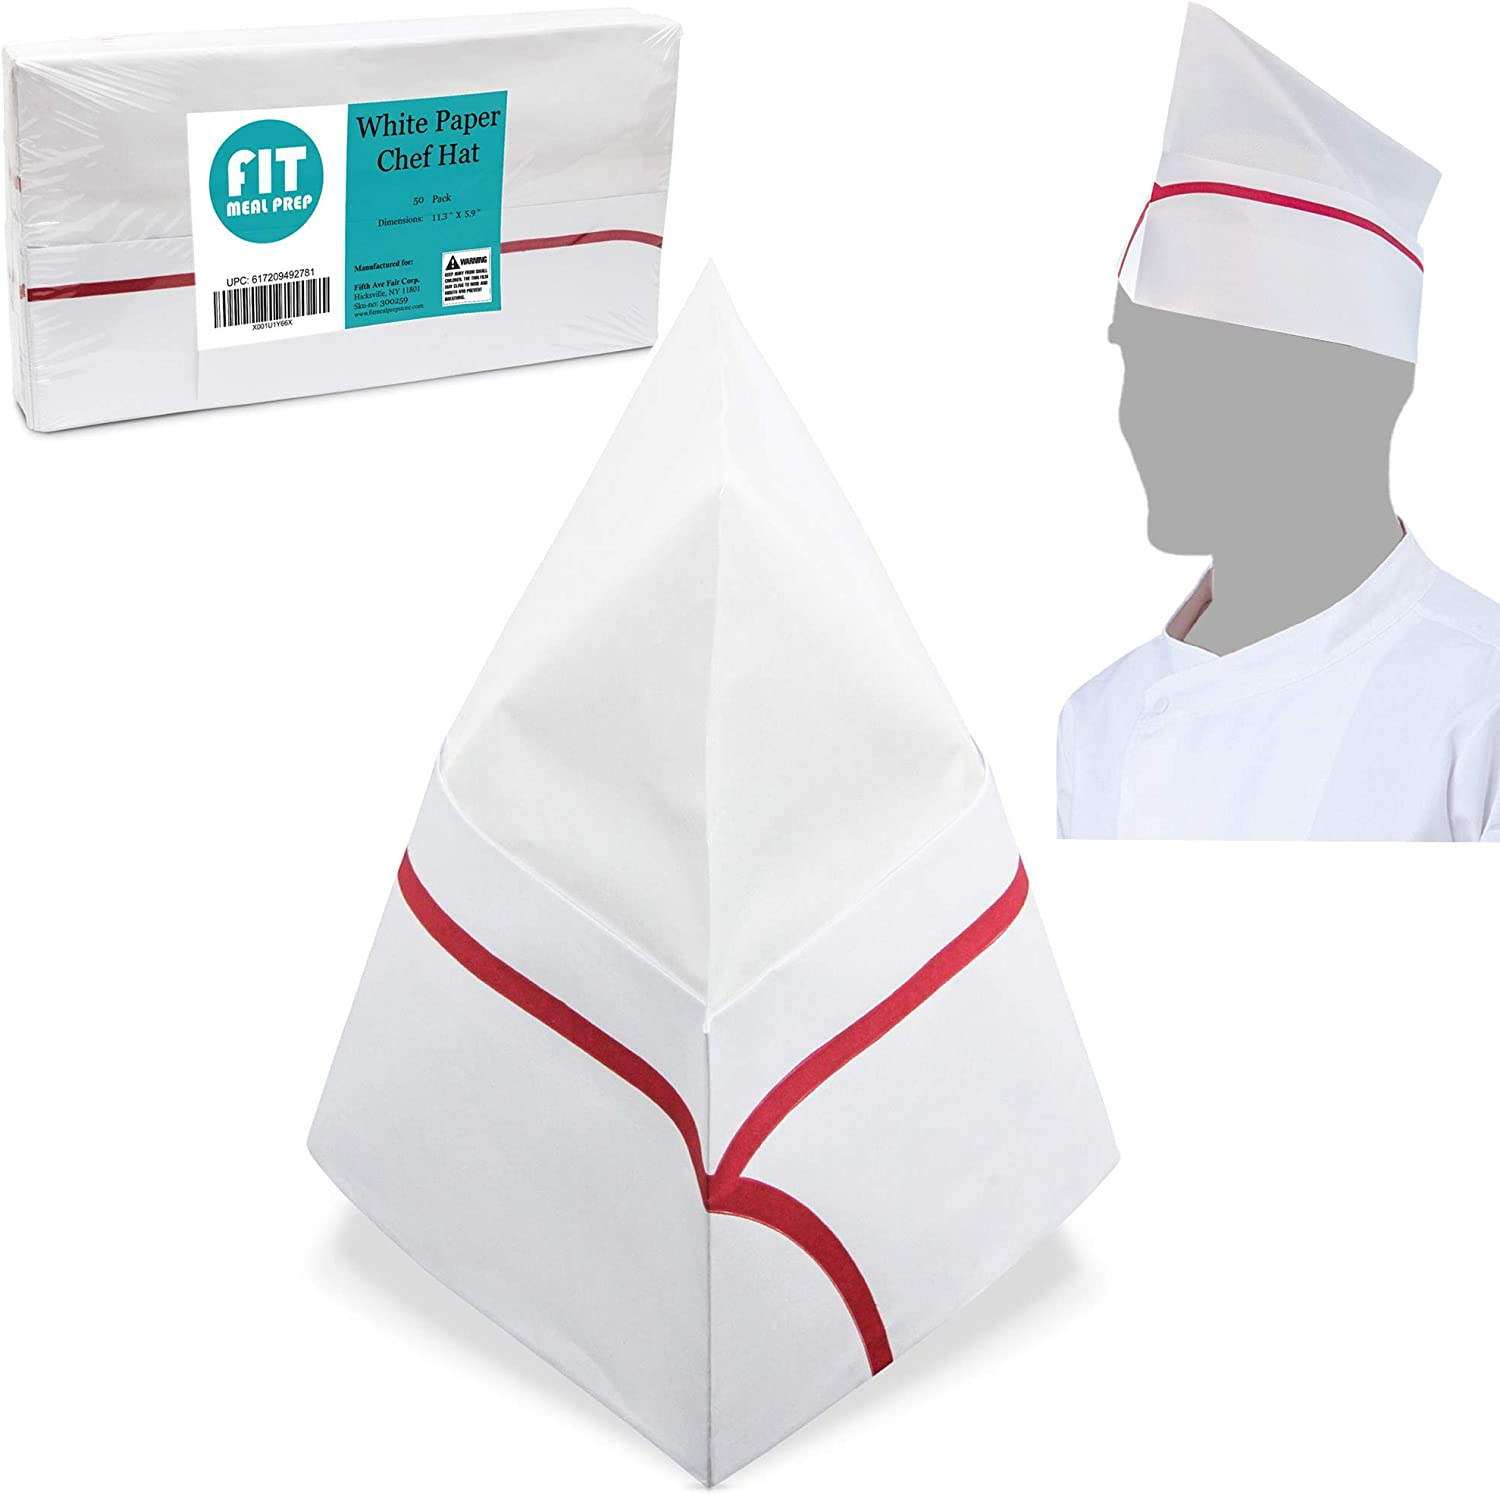 White Paper Chef Hat - Disposable Soda Jerk Cap for Food Server